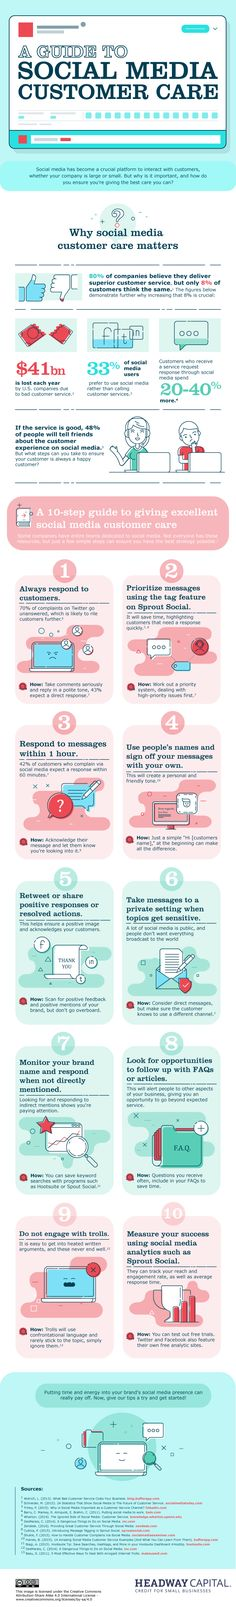 10 Step Guide to Giving Outstanding Social Media Customer Care